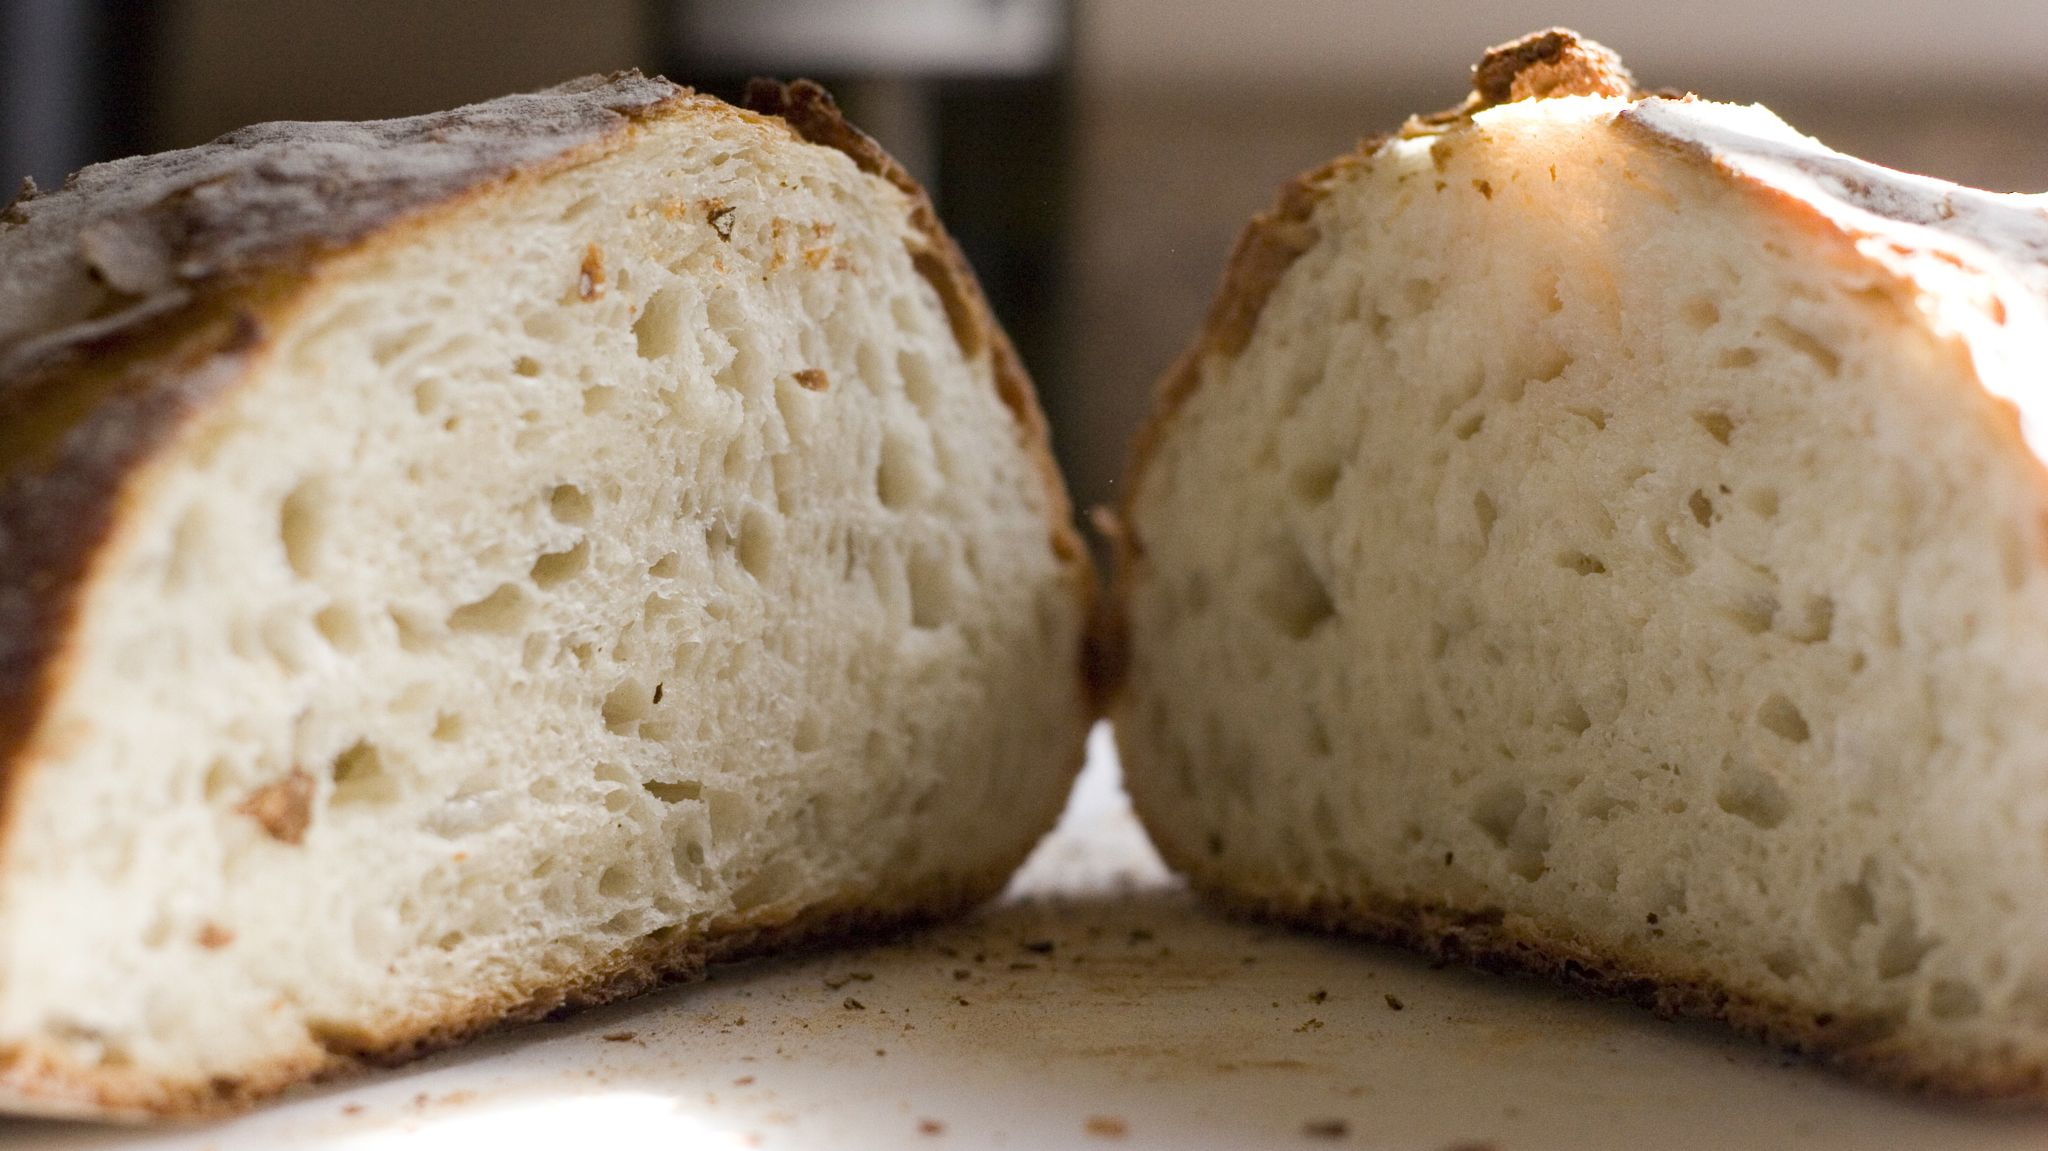 Unless You Have Celiac Disease, Gluten Sensitivity is Probably Just in Your Head